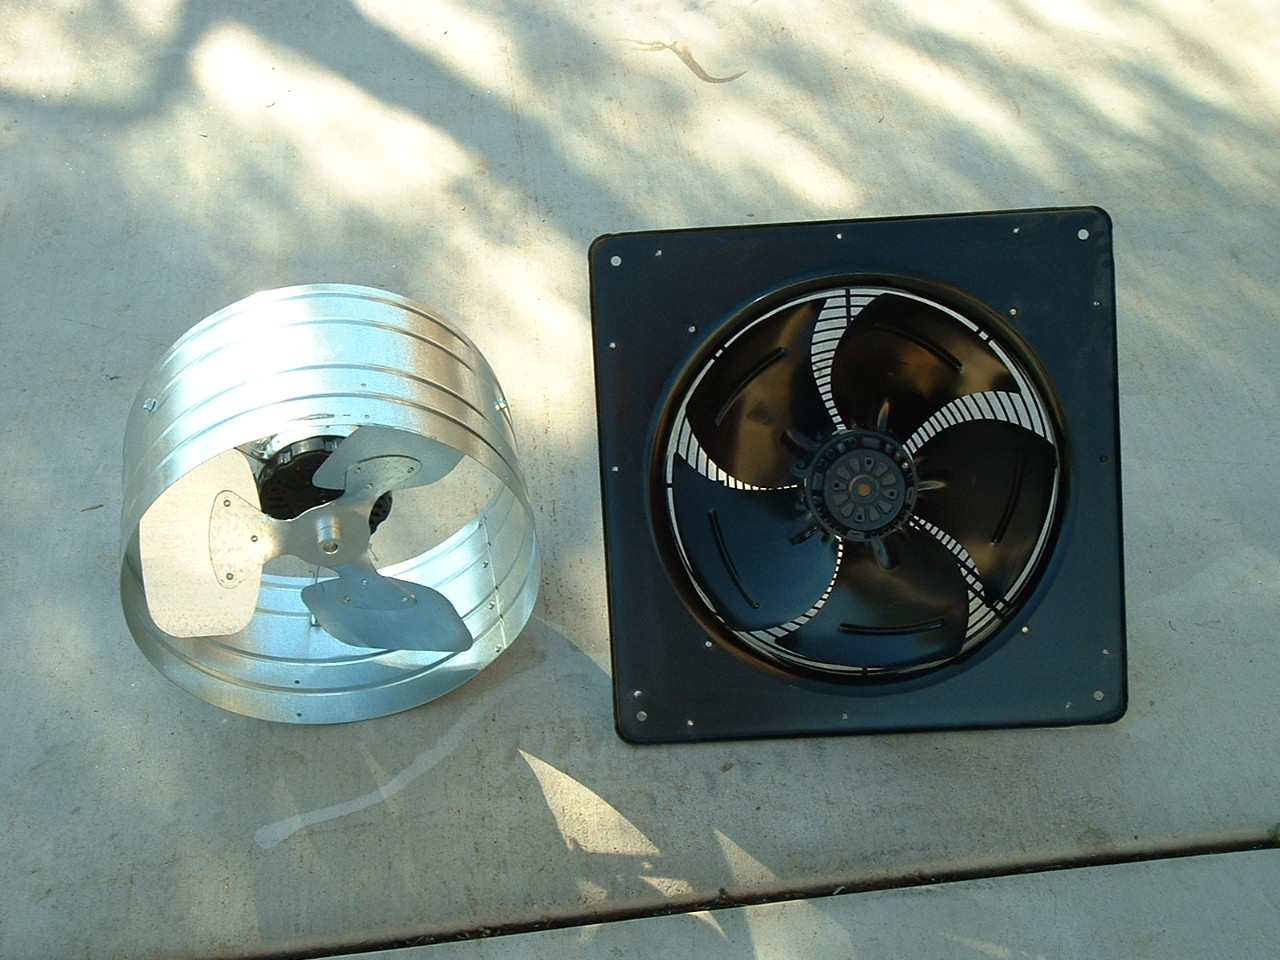 #457786 Attic Fan Recommended 2767 Exhaust Fan In Attic pics with 1280x960 px on helpvideos.info - Air Conditioners, Air Coolers and more